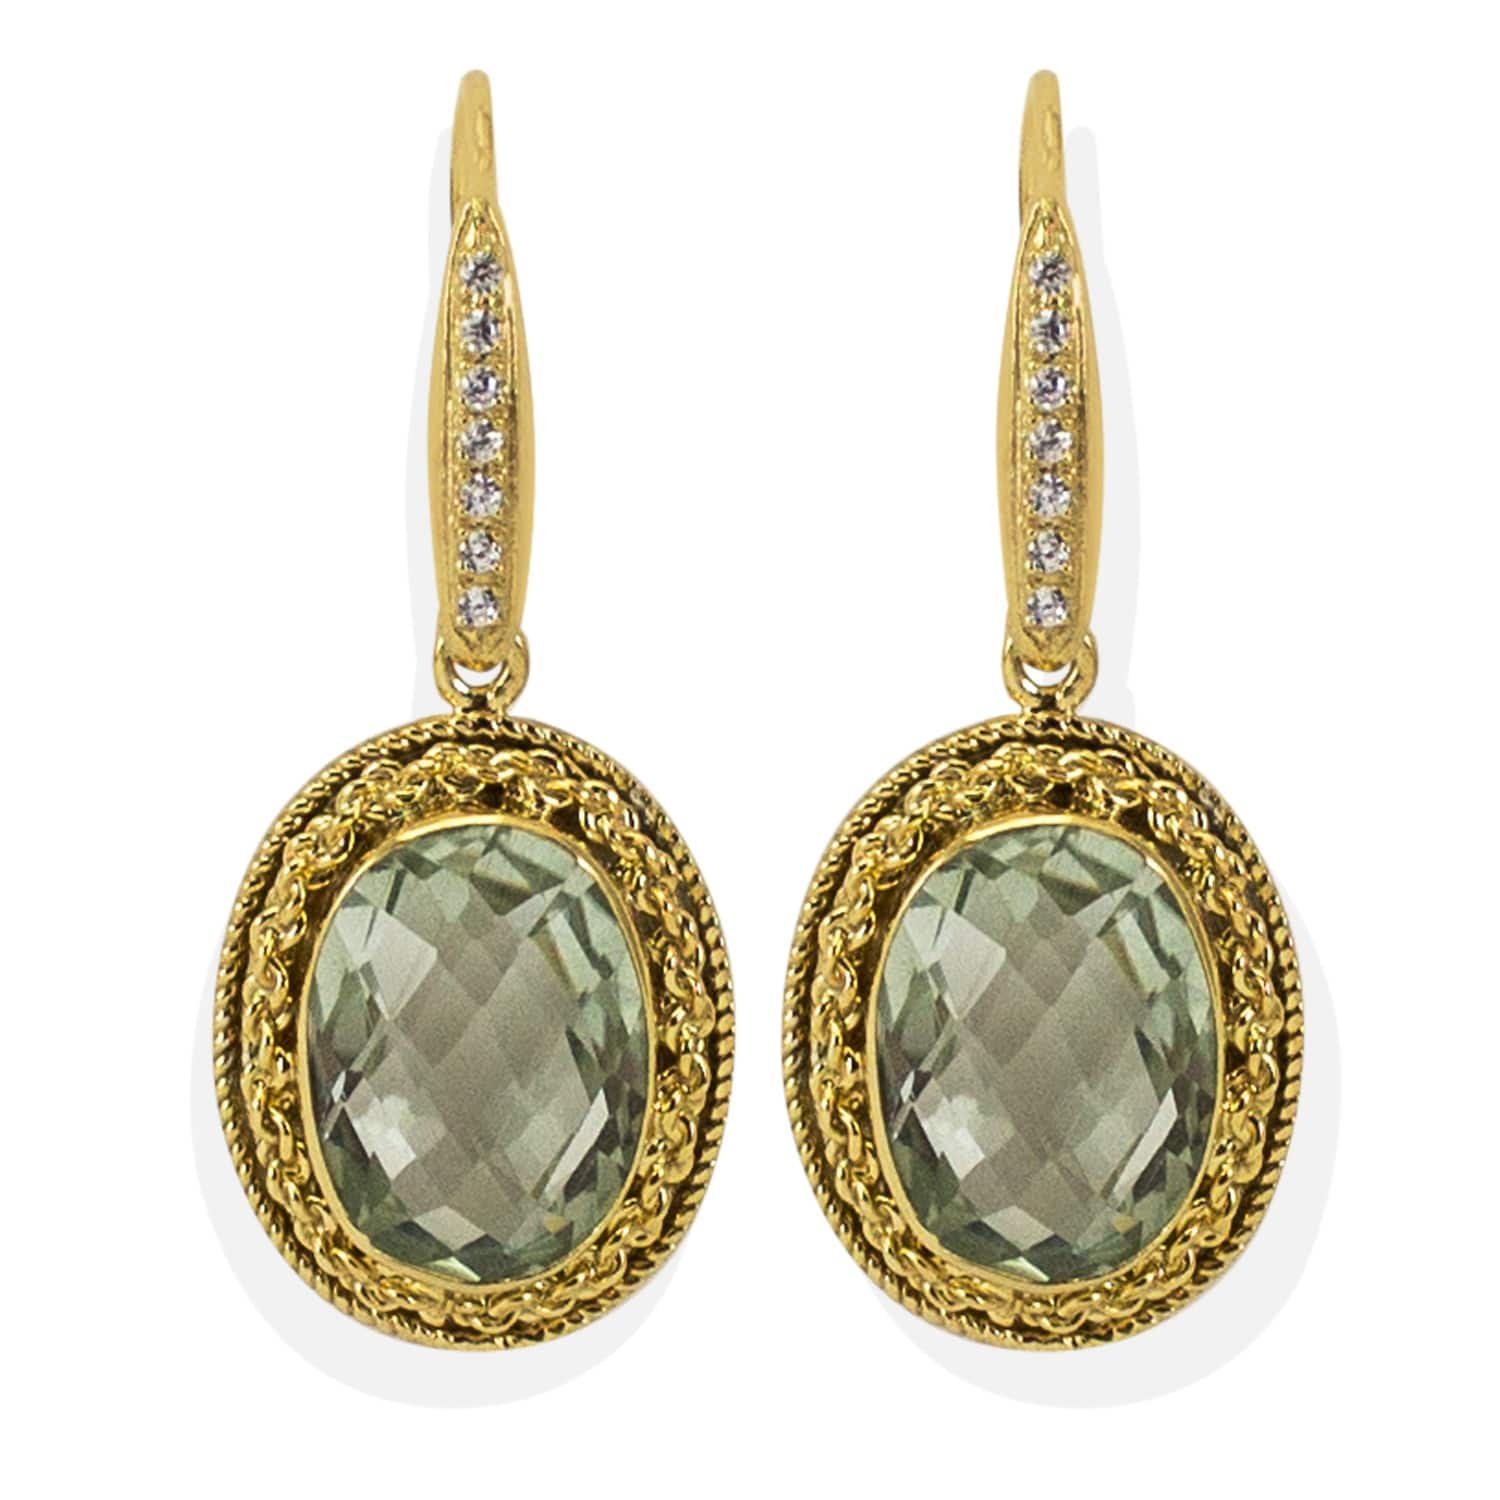 Italy Design Jewelry Minerva Prasiolite Earrings By Vintouch Italy